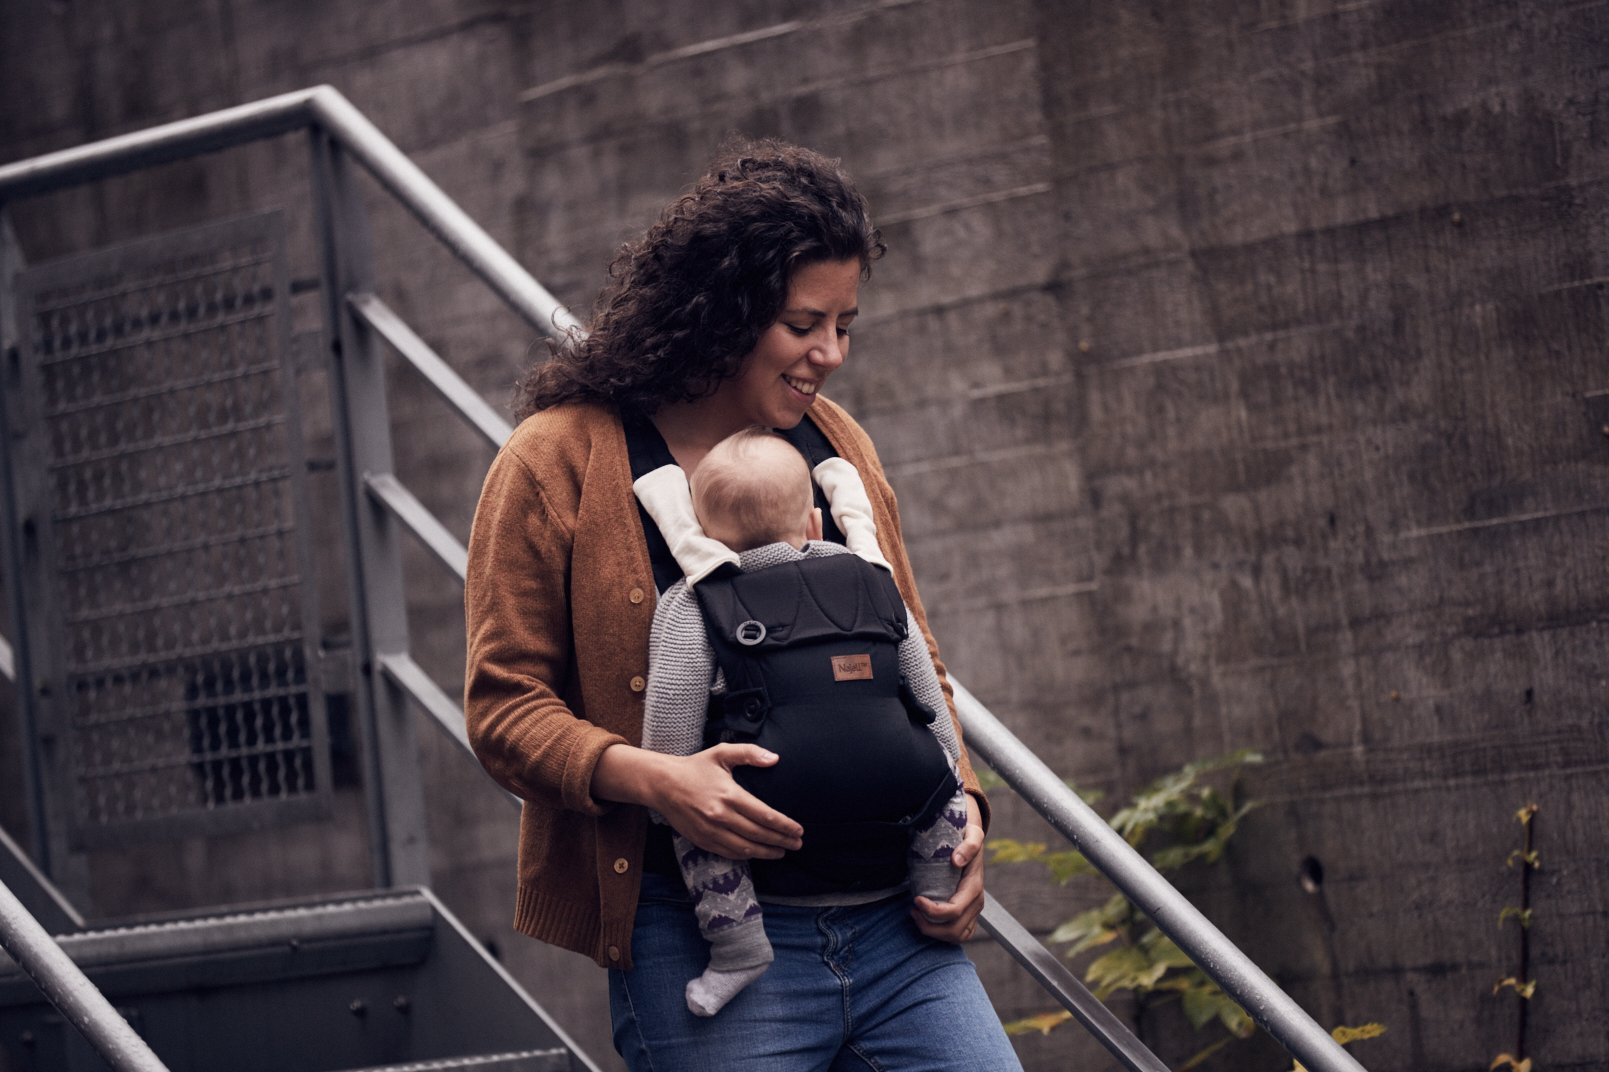 Najell Omni Active Mesh Baby Carrier with Hip Seat, Brilliant Black Béaba New-born ergonomic position and hips seat from 6 months. Market leading weight distribution with hip seat, recommended by the international hip dysplasia institute as a hip-healthy baby carrier Weight: 3, 5 to 15 kg and age: new-born to 3 years. 7